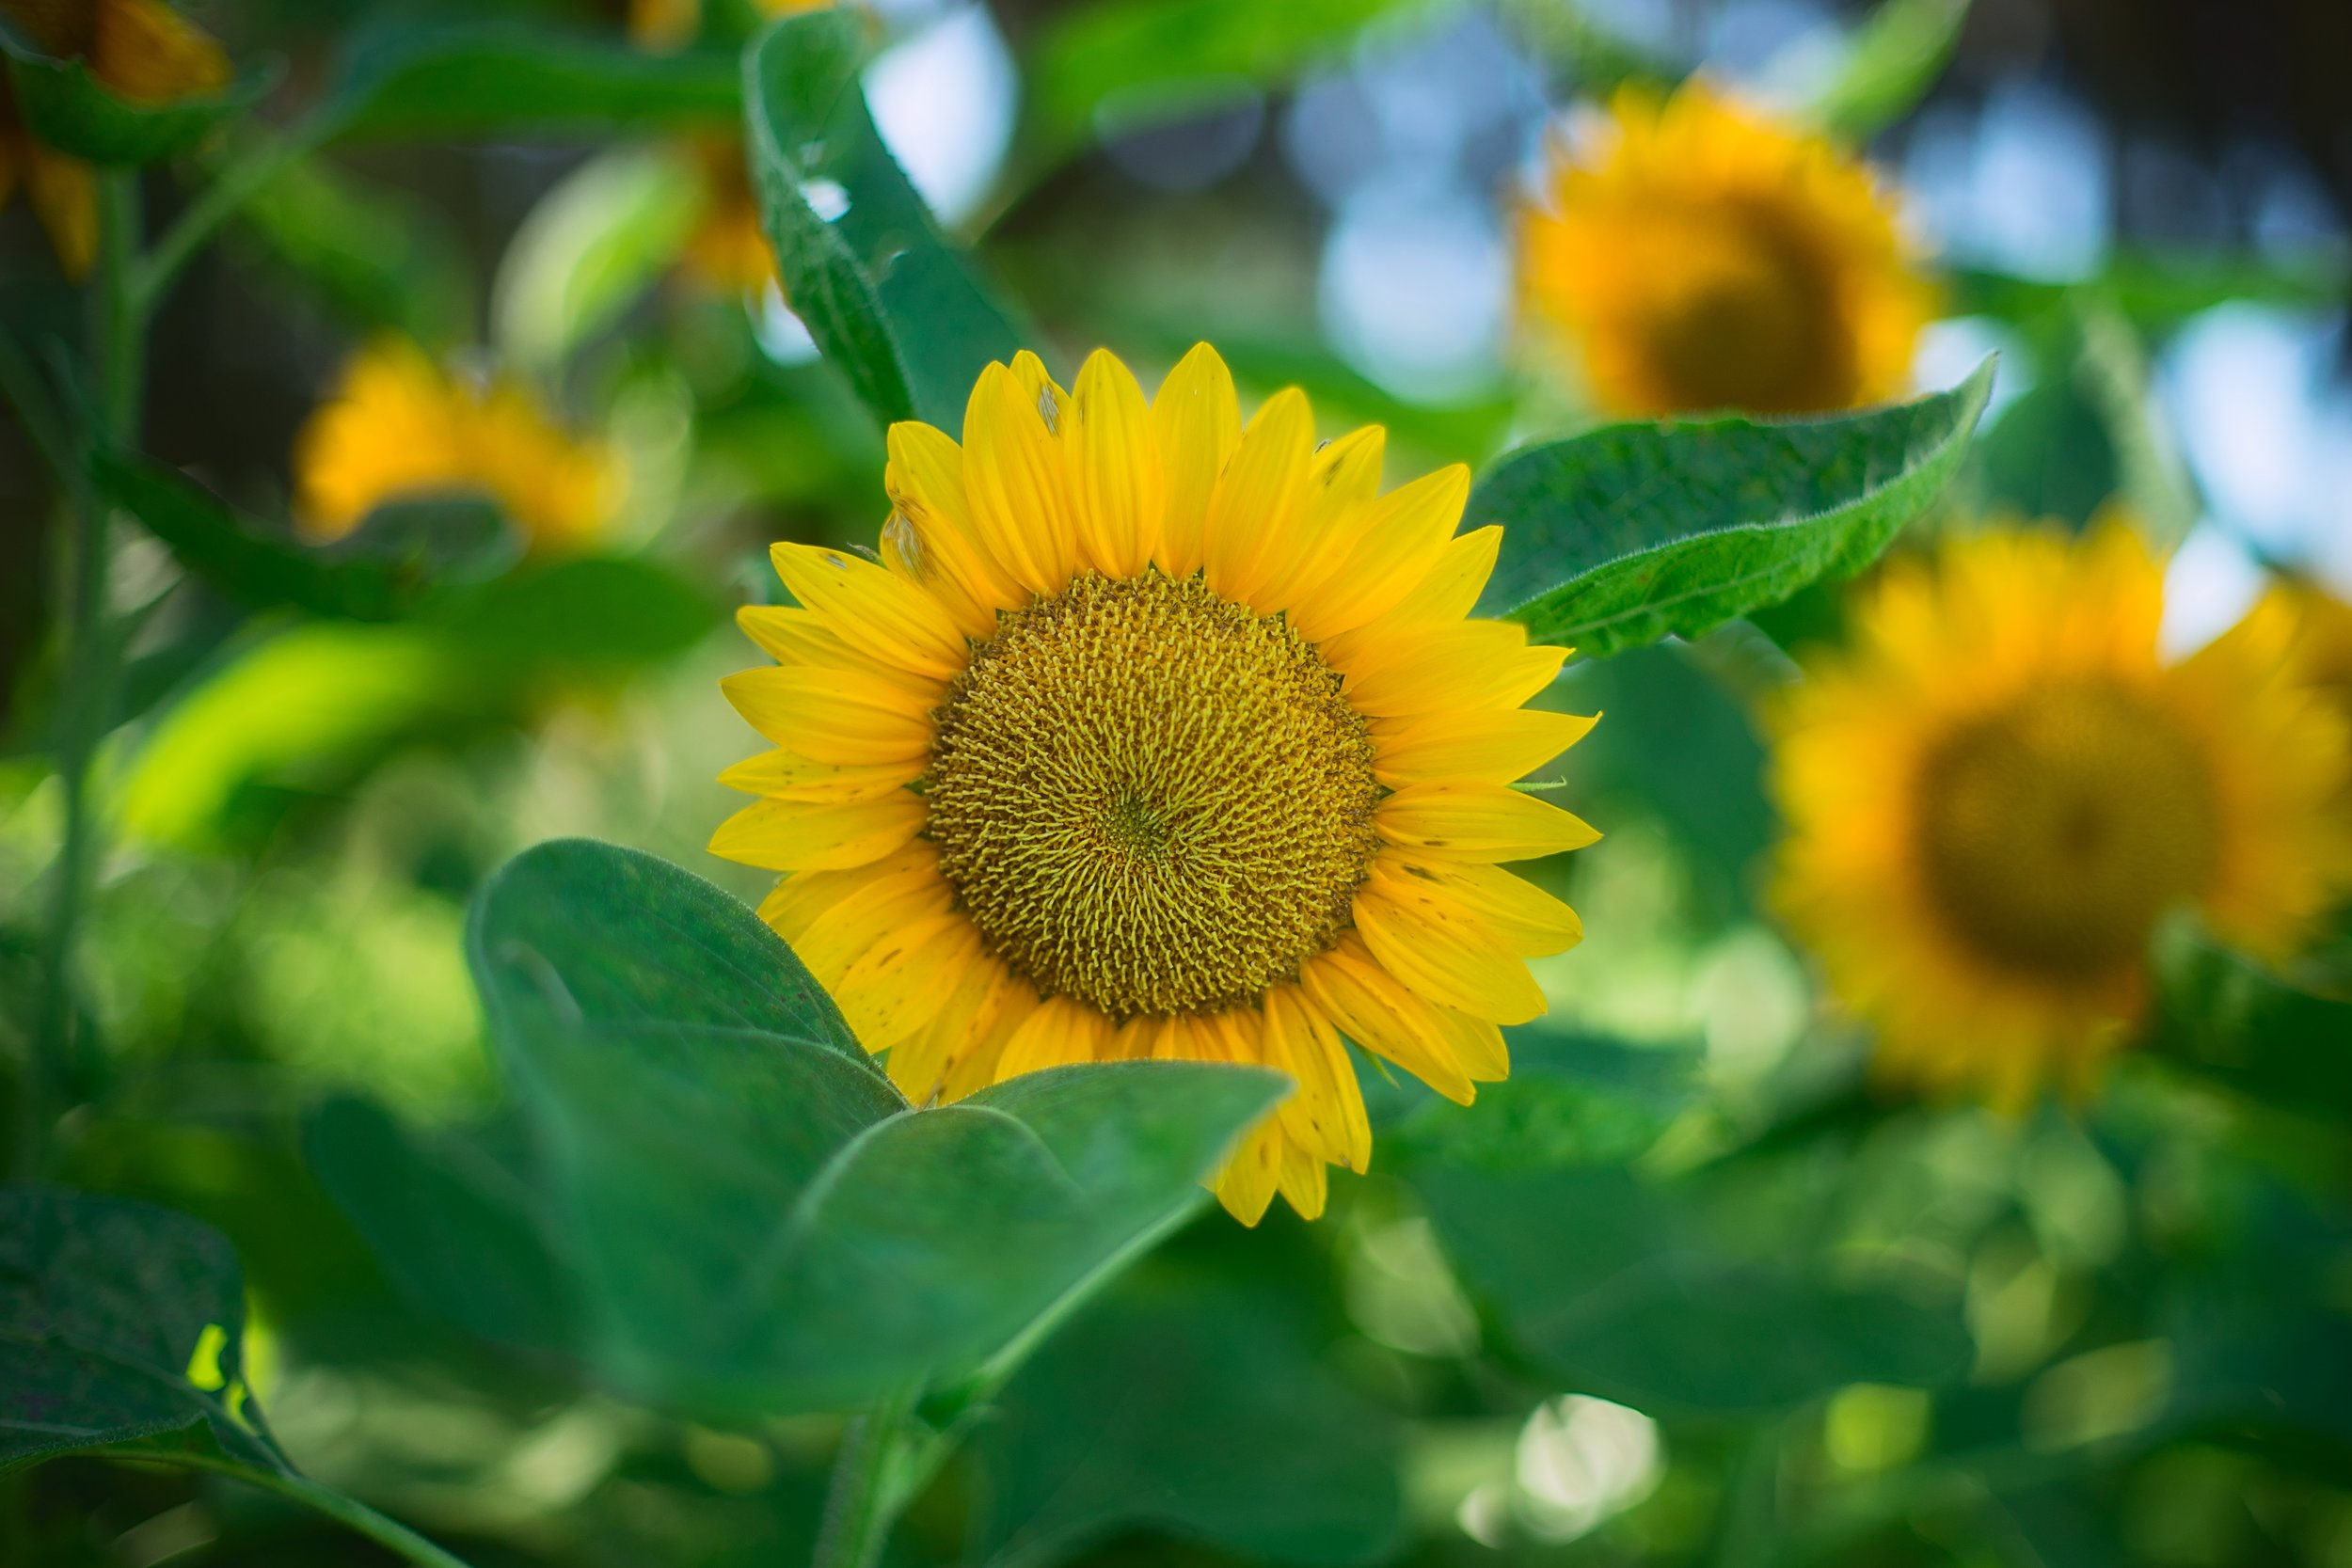 Sunflowers are such happy flowers…